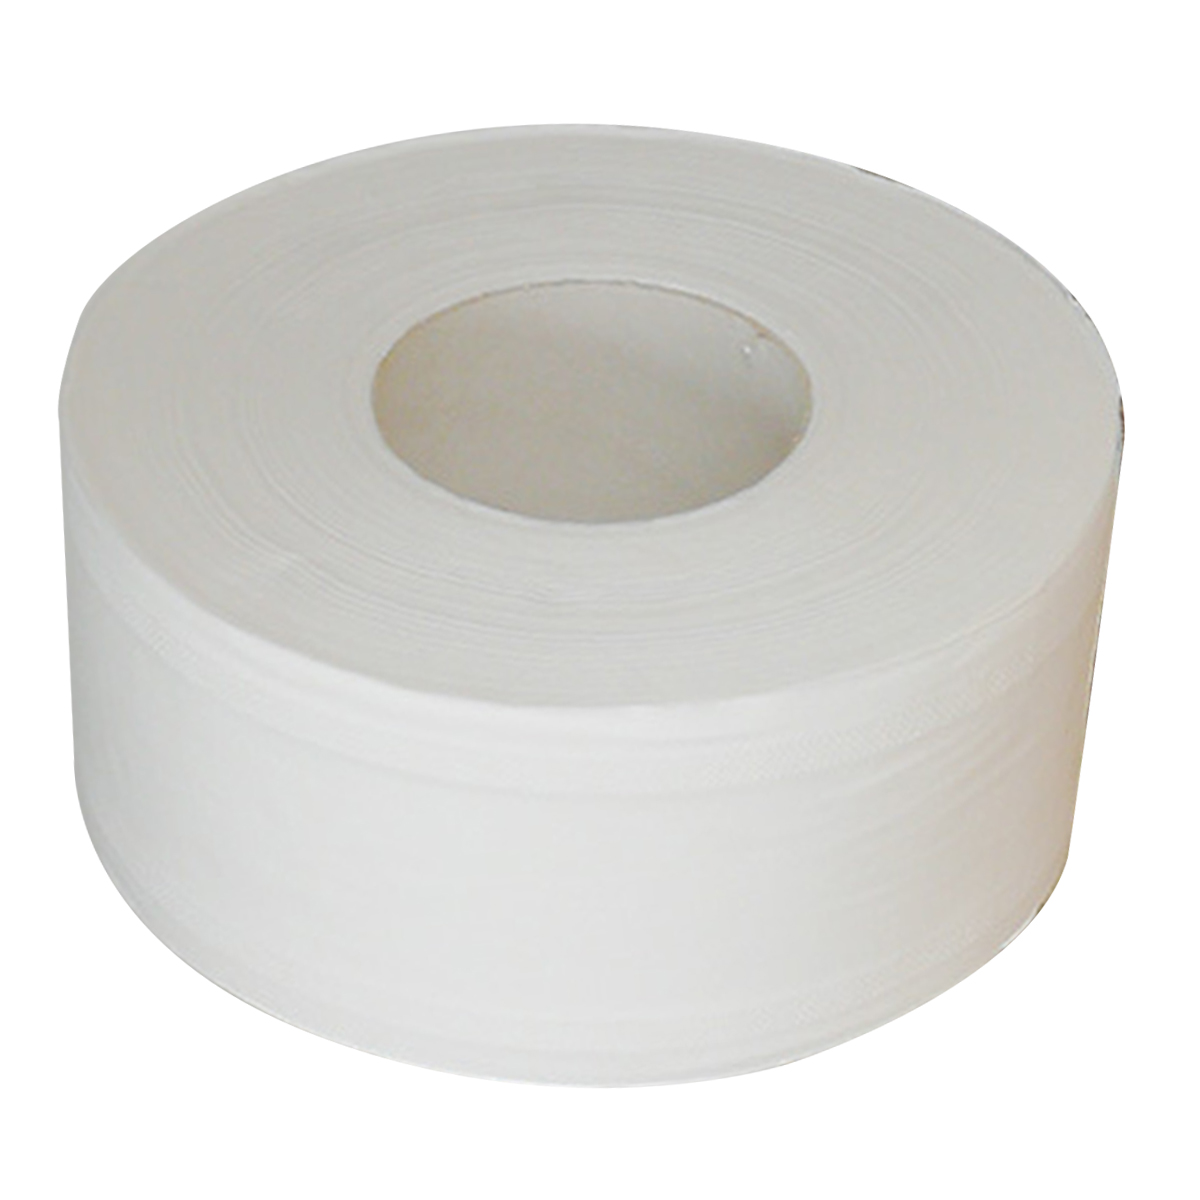 1 Roll 4-Layer Jumbo Roll Toilet Paper Soft Home Native Wood Pulp Good Water Absorption Paper Rolling Paper Sanitary Paper 410g